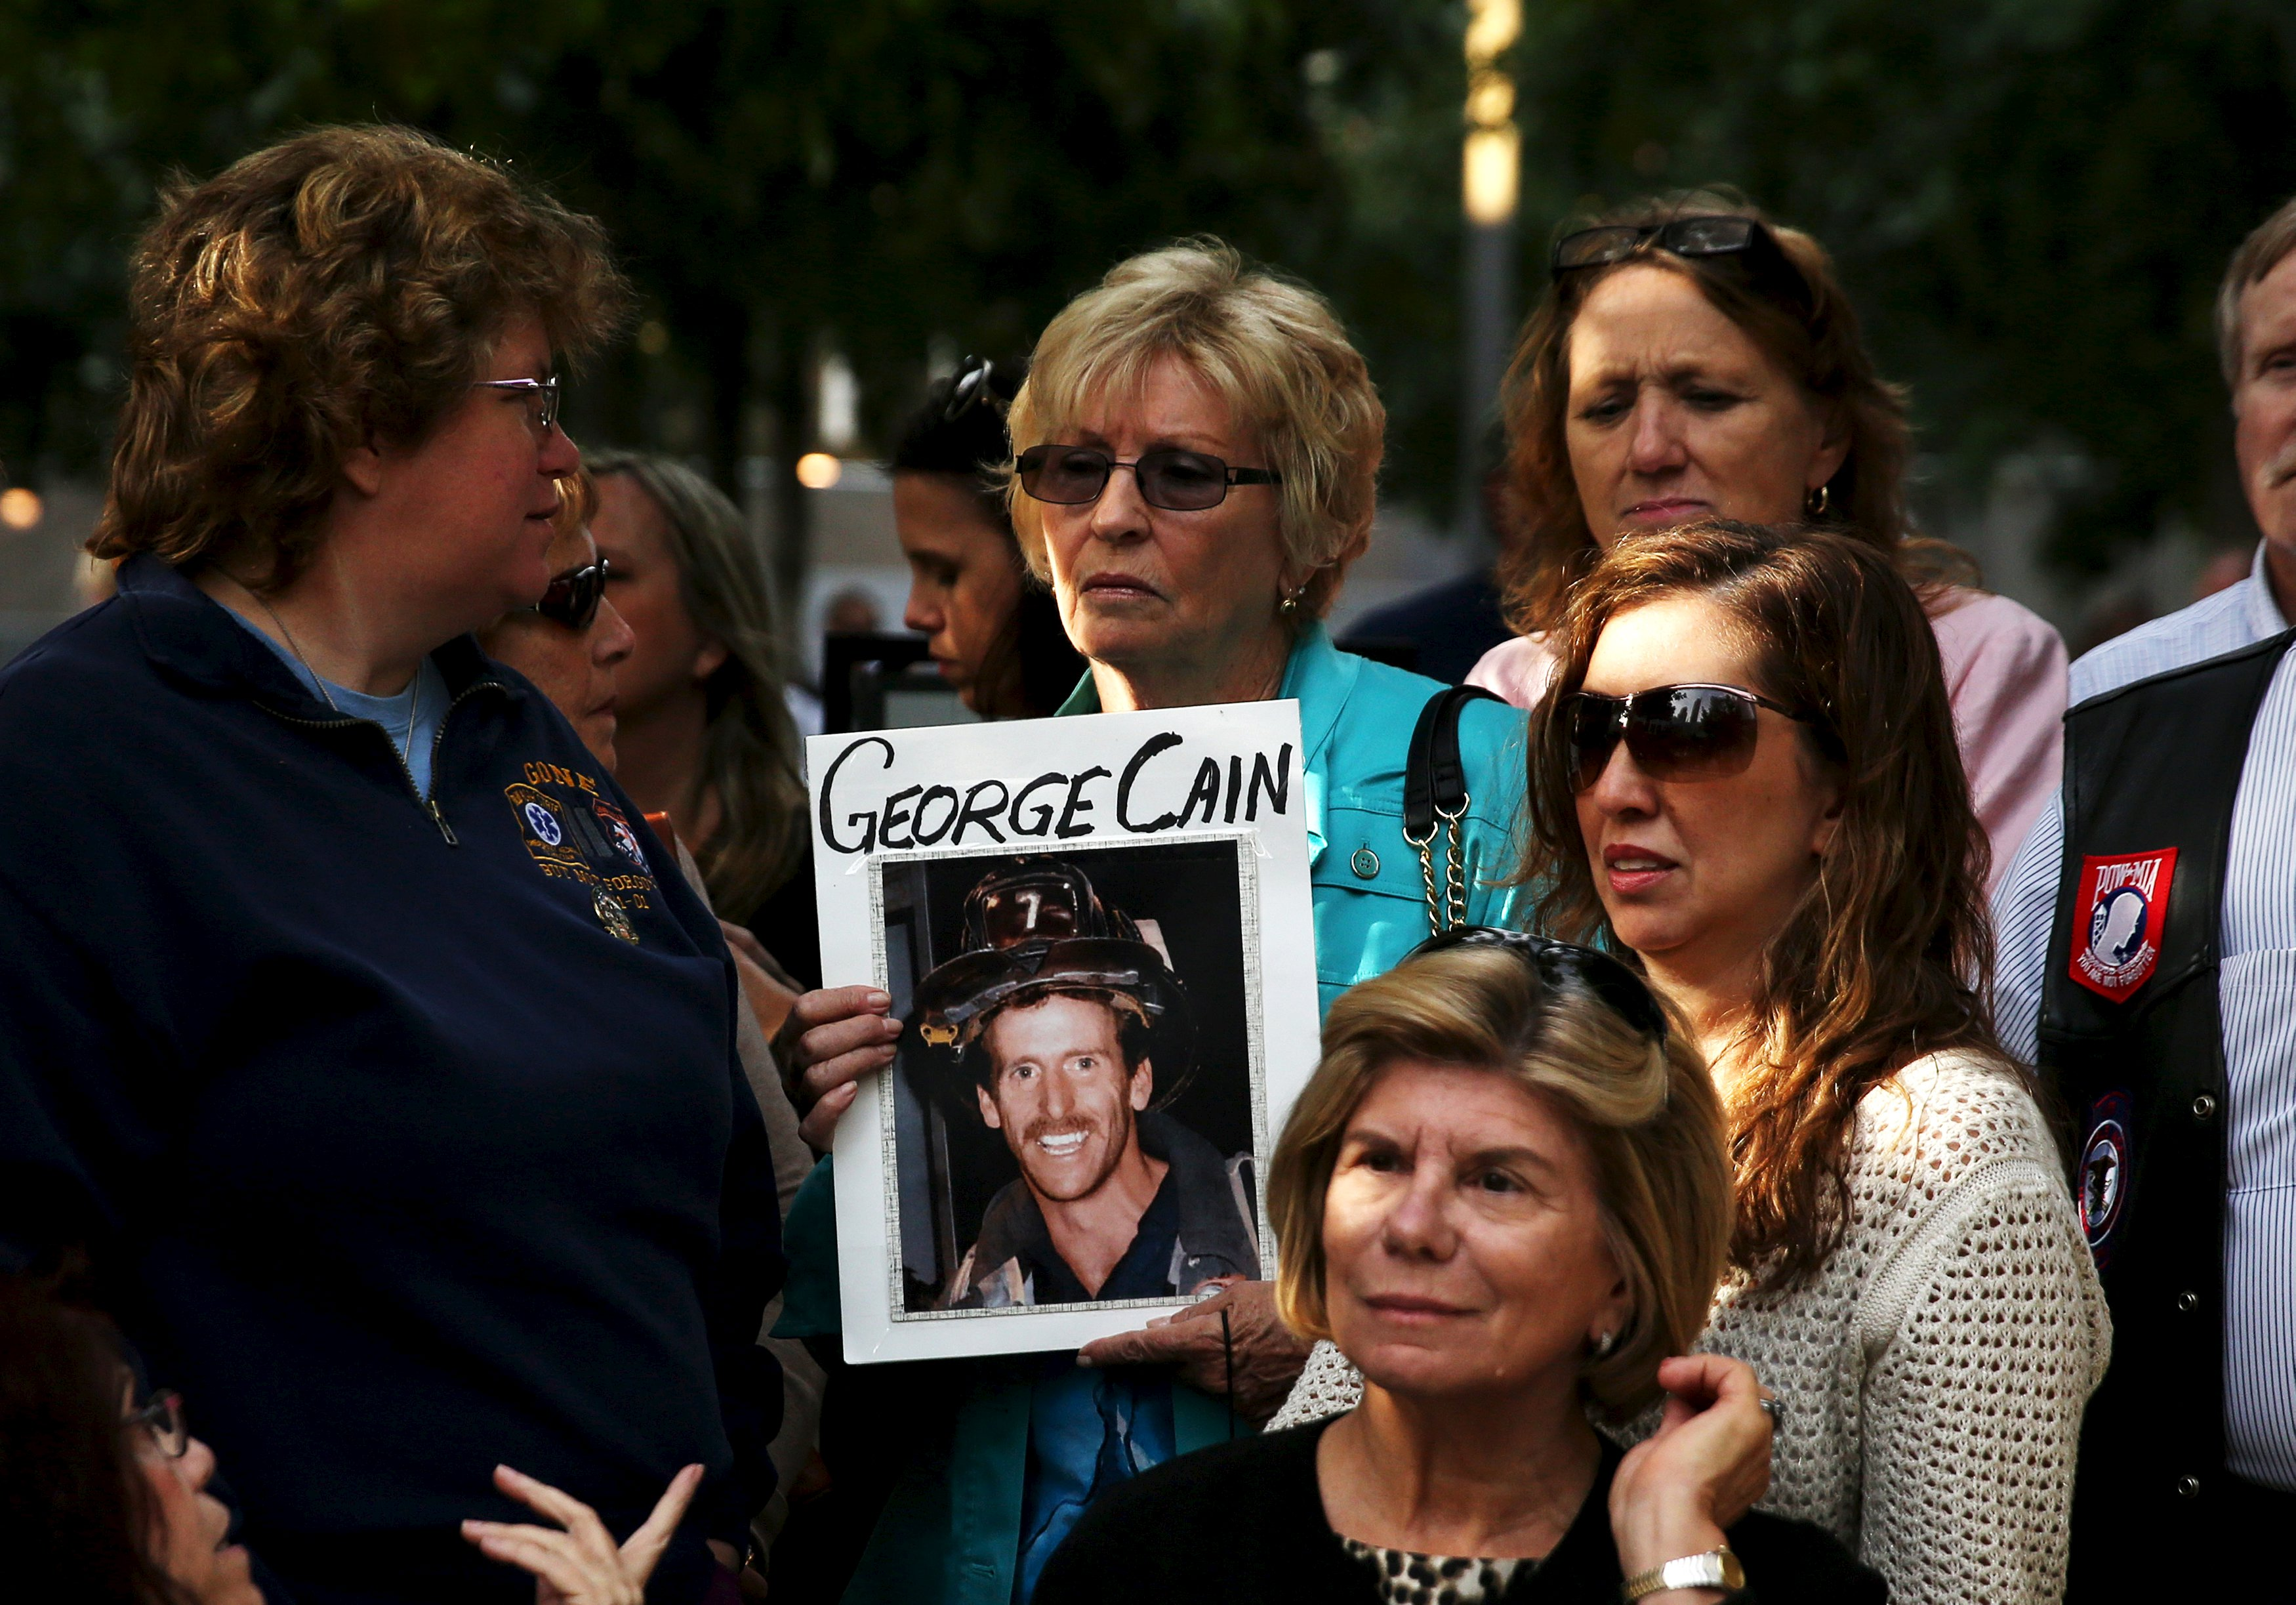 Rosemary Cain, holds a picture of her son George Cain from FDNY Ladder Company 7 who died in the September 11 attacks, at the site where the World Trade Center was, in New York September 25, 2015. Pope Francis is expected to visit the site as part of his five-day trip to the United States. REUTERS/Shannon Stapleton